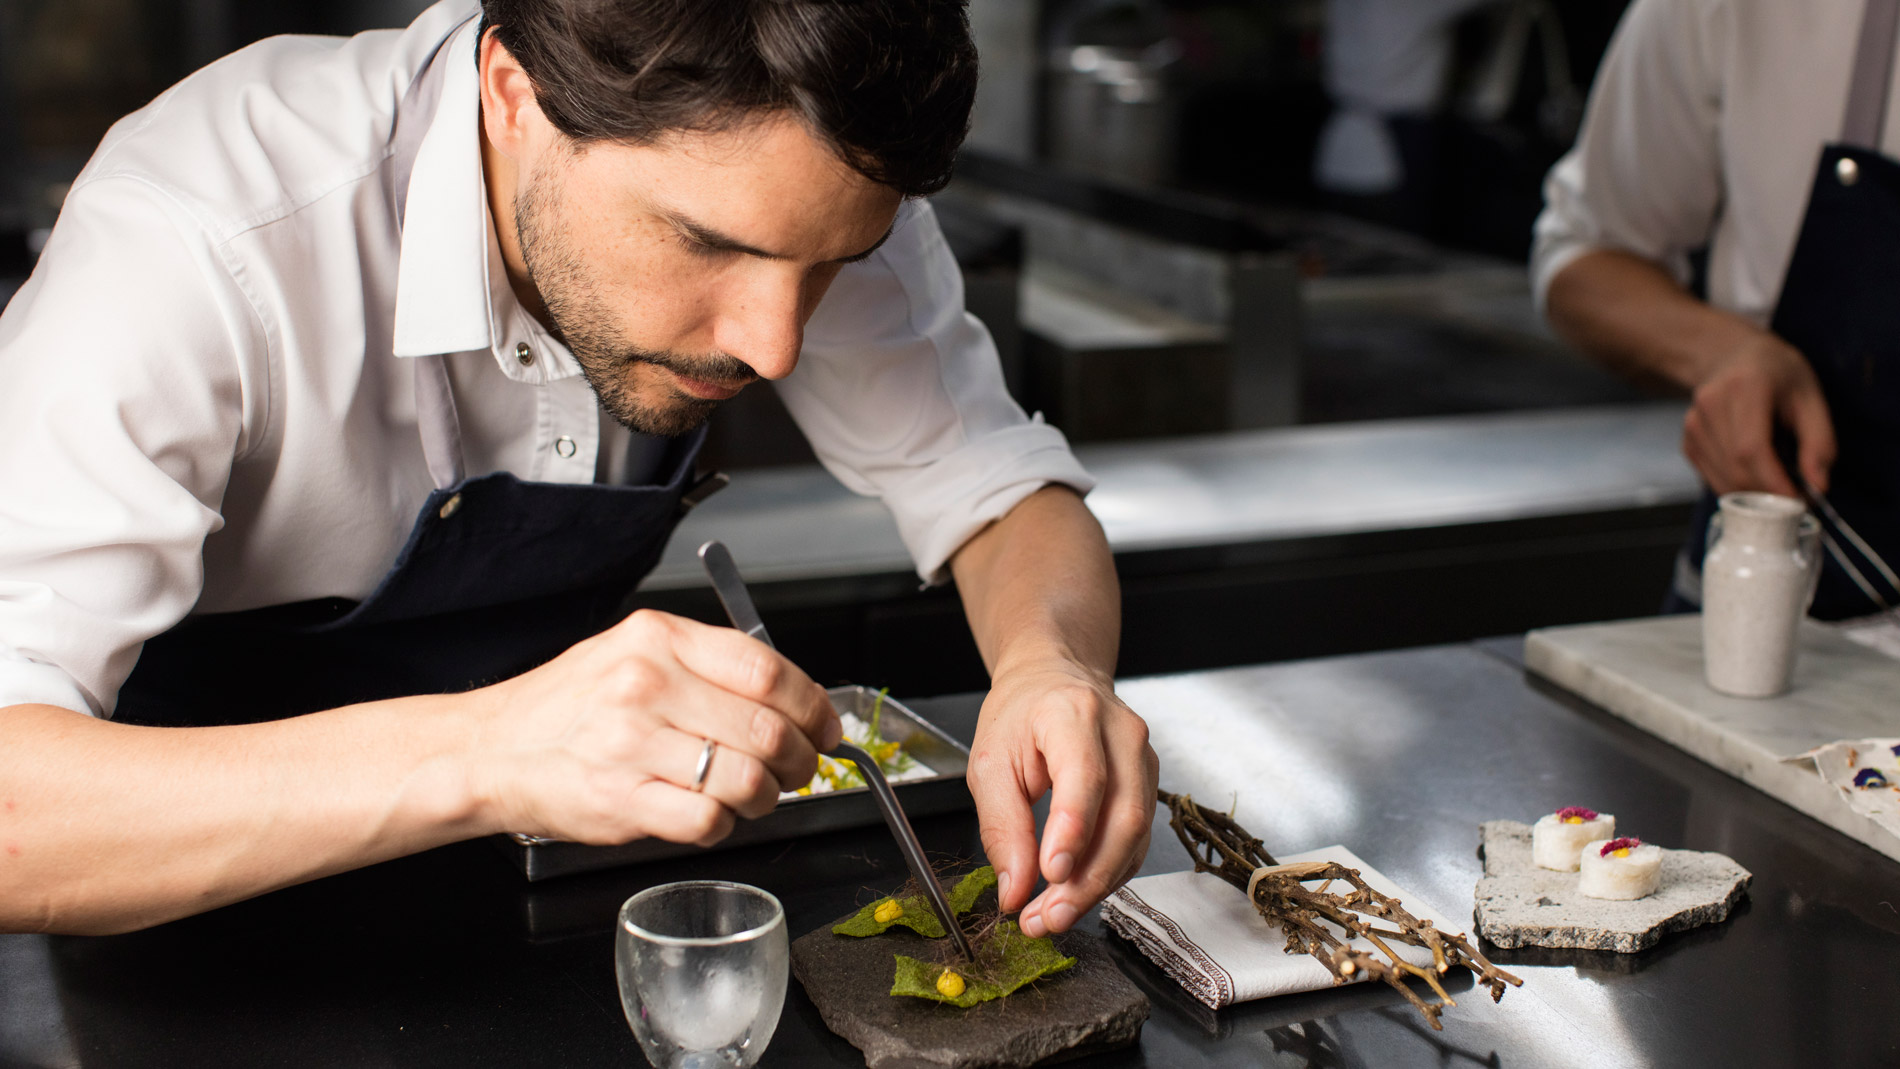 Virgilio Martinez, Central Restaurante in Lima, Peru